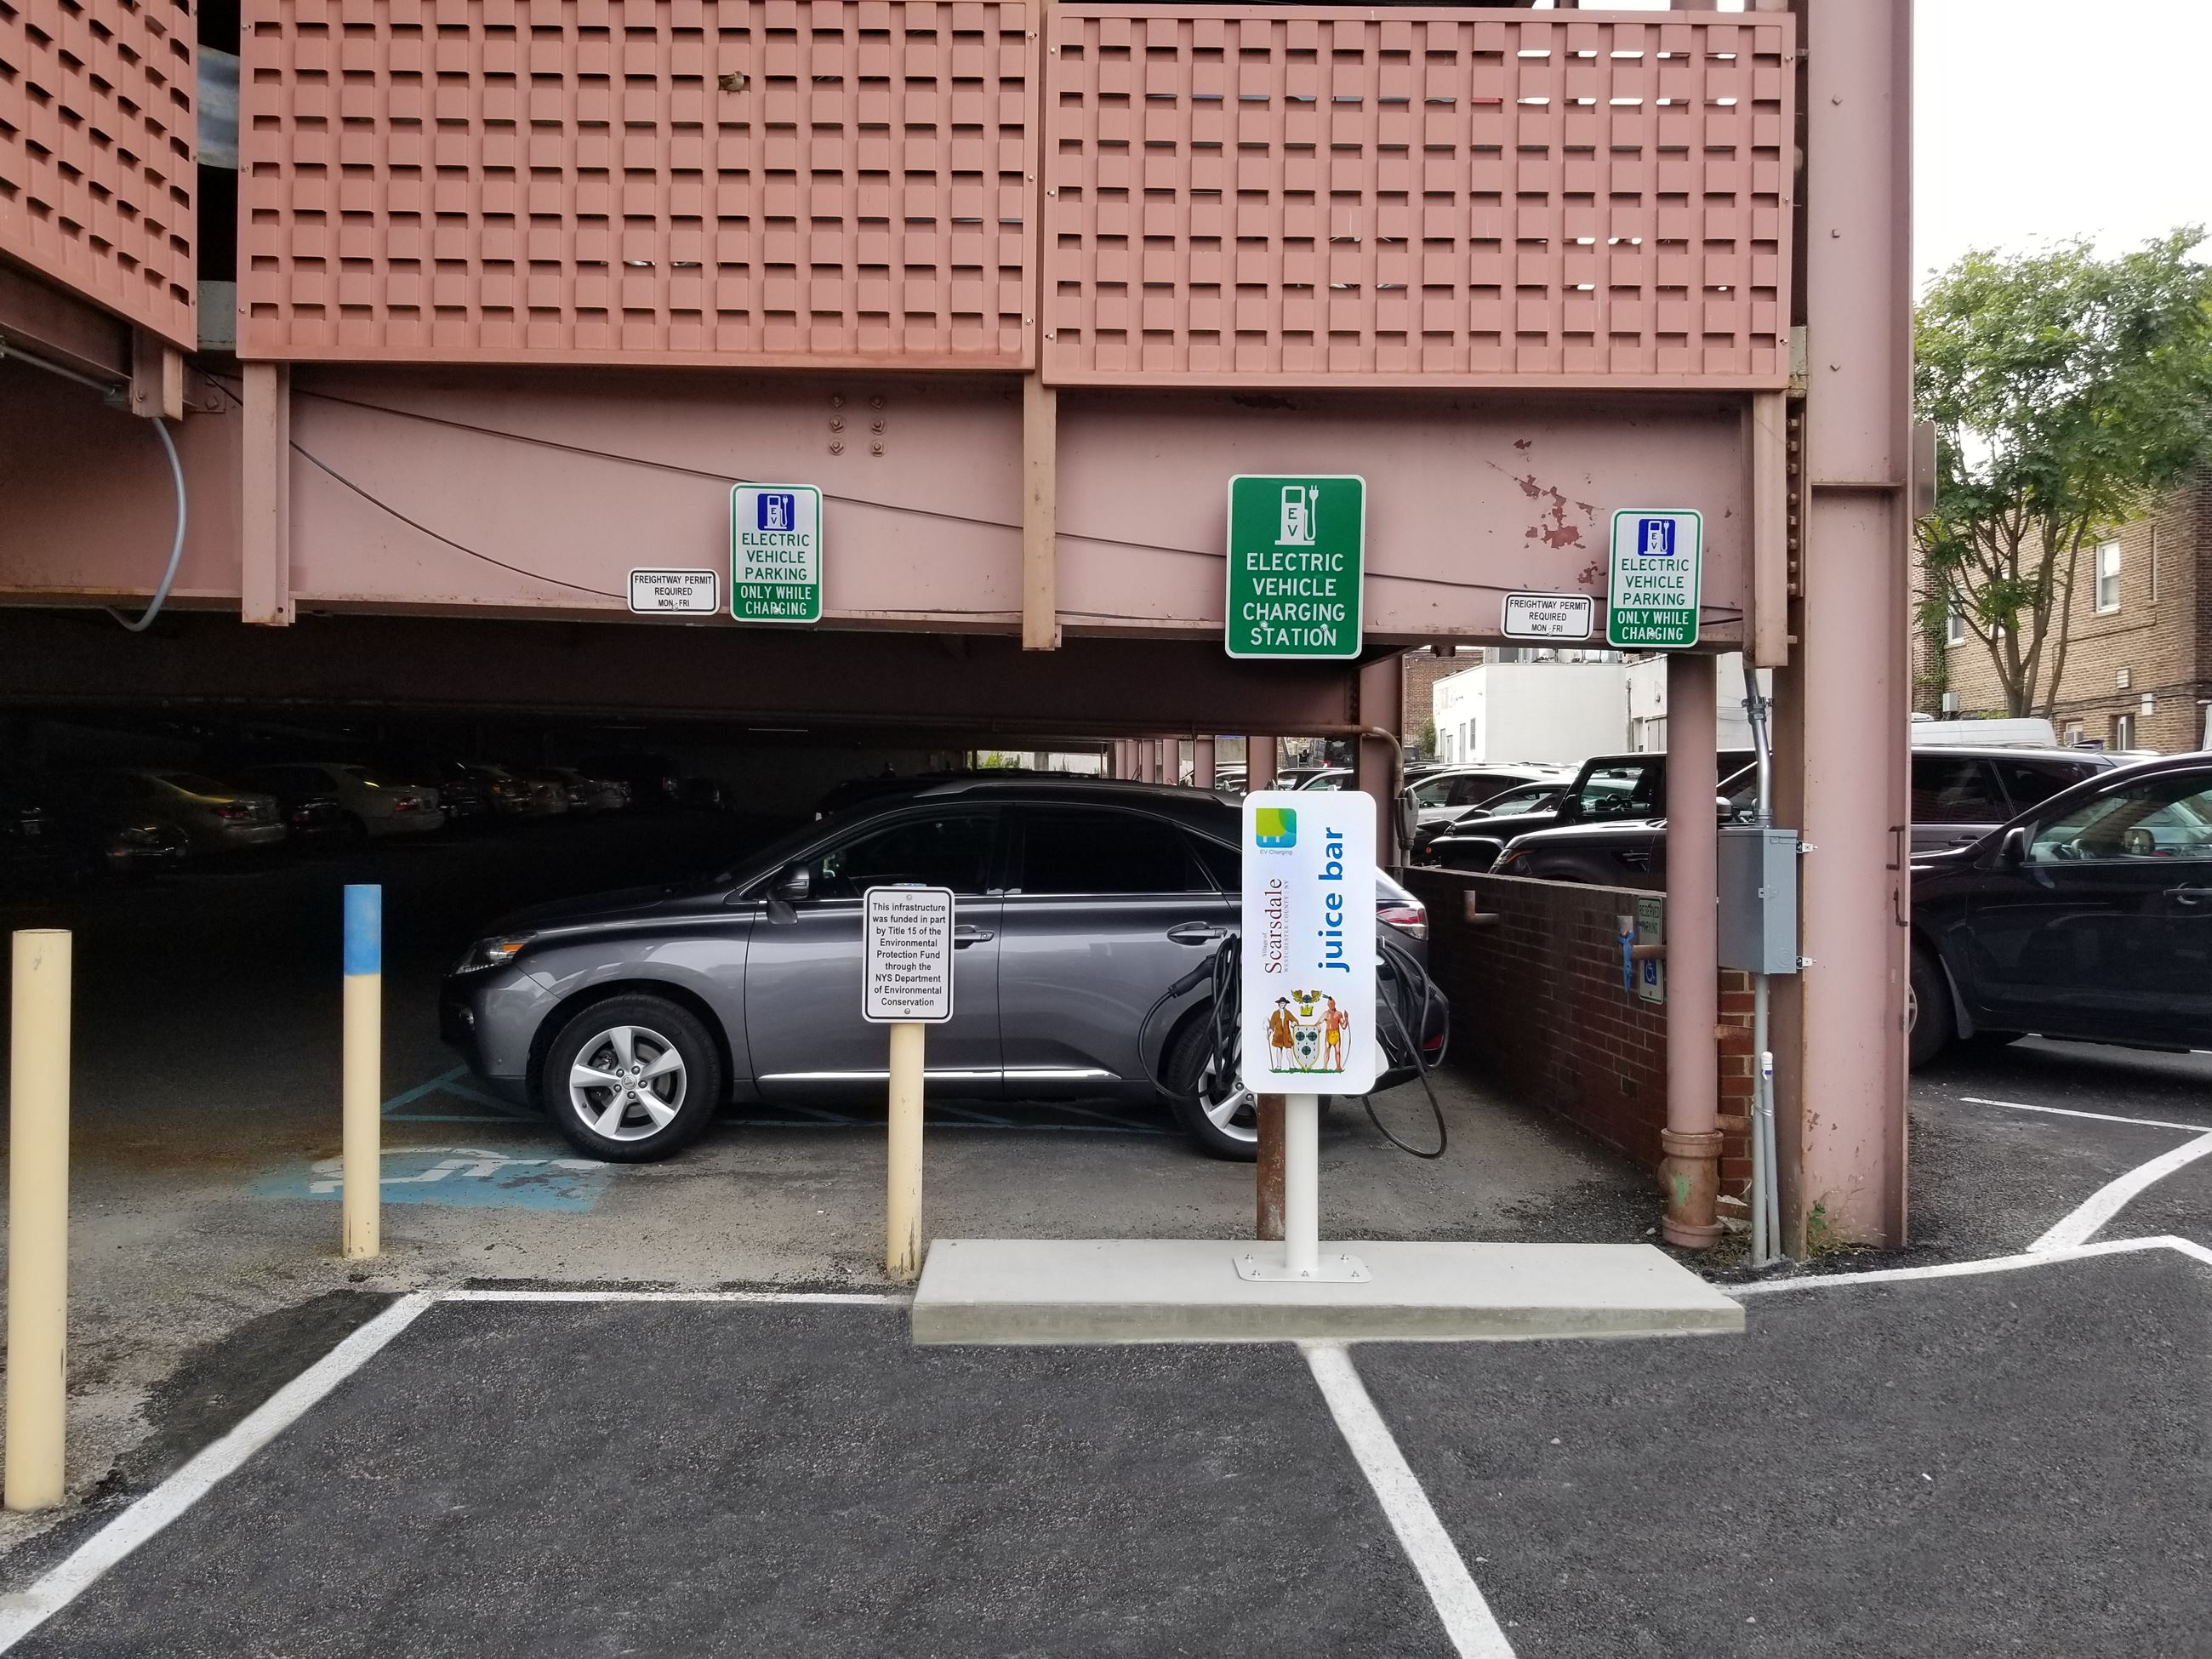 Electric Vehicle Charger (IMG)